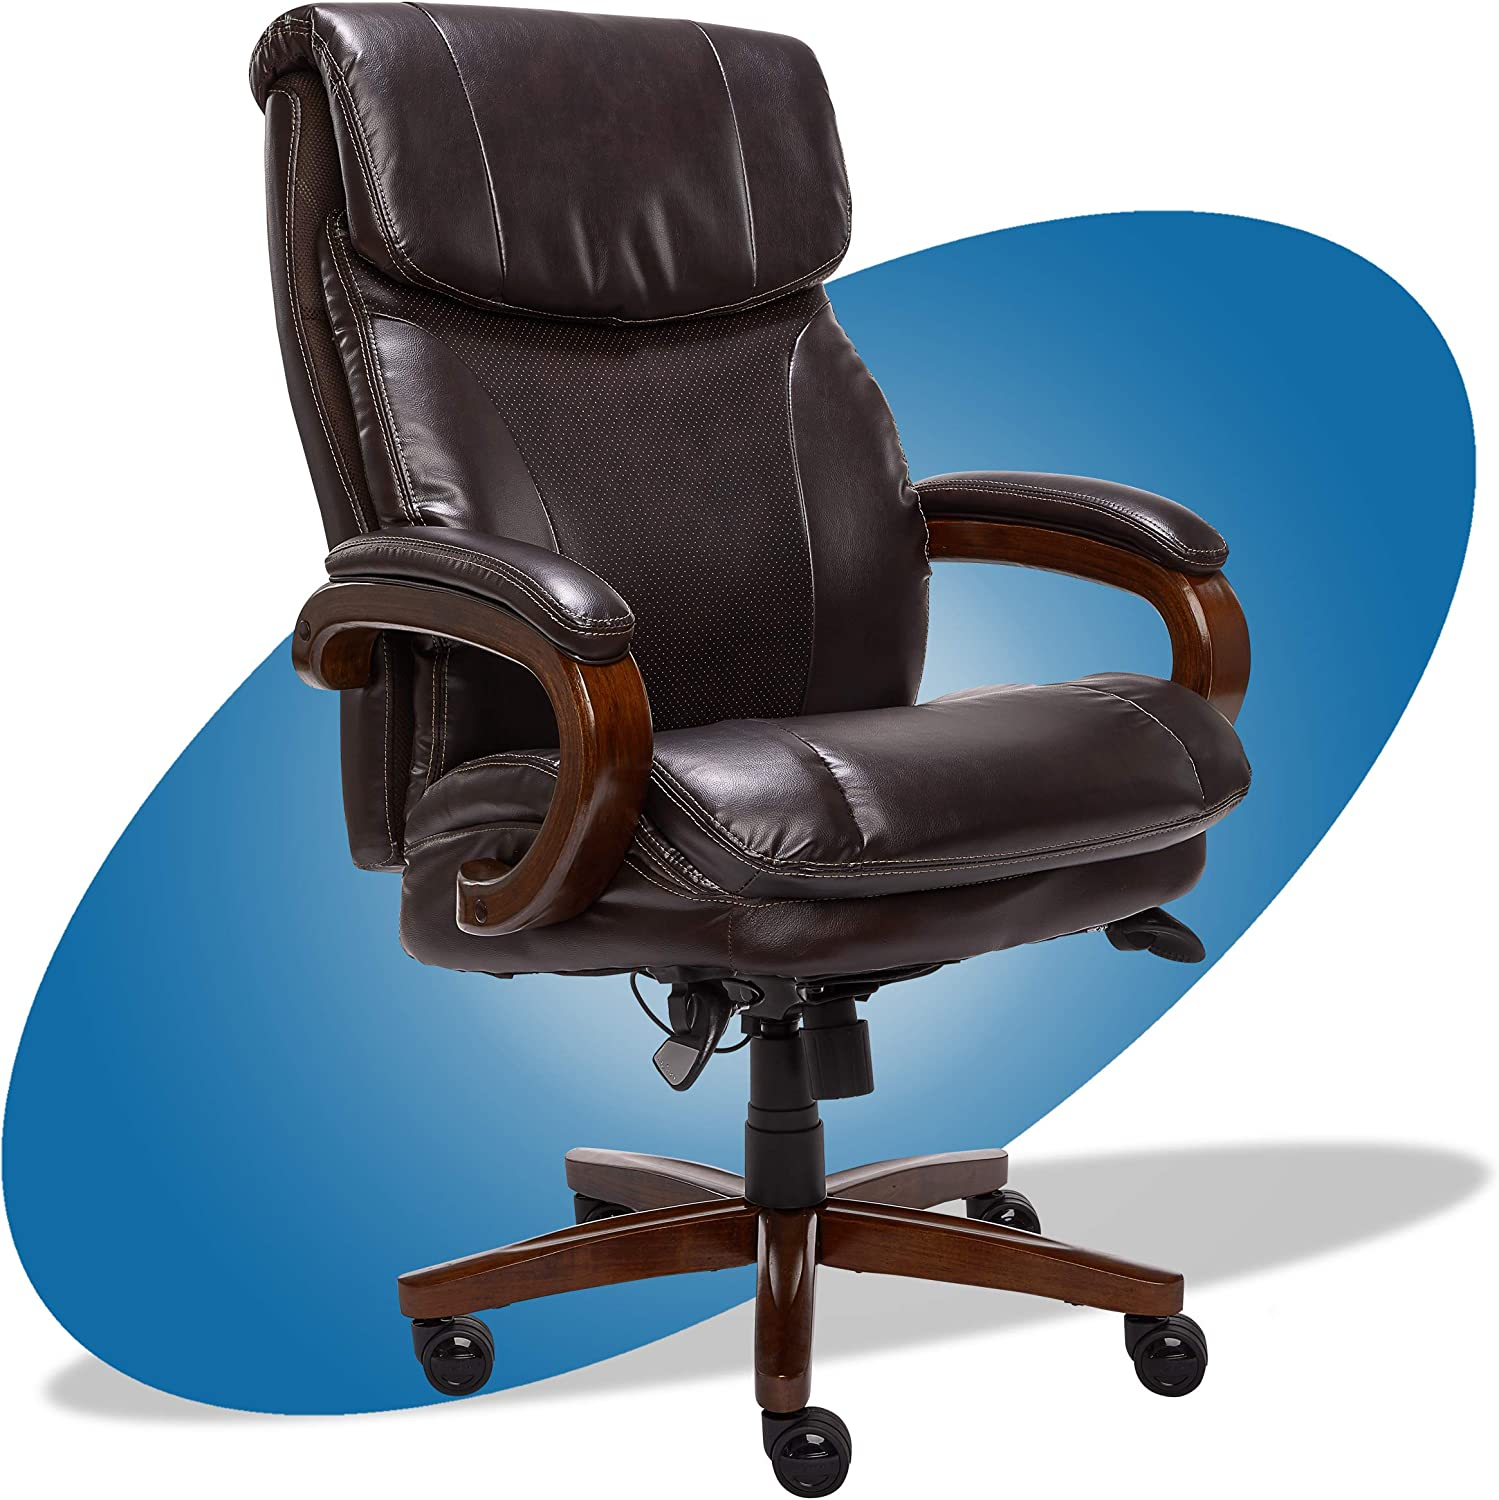 Amazon Com La Z Boy Trafford Big And Tall Executive Office Chair With Air Technology High Back Ergonomic Lumbar Support Brown Bonded Leather Furniture Decor